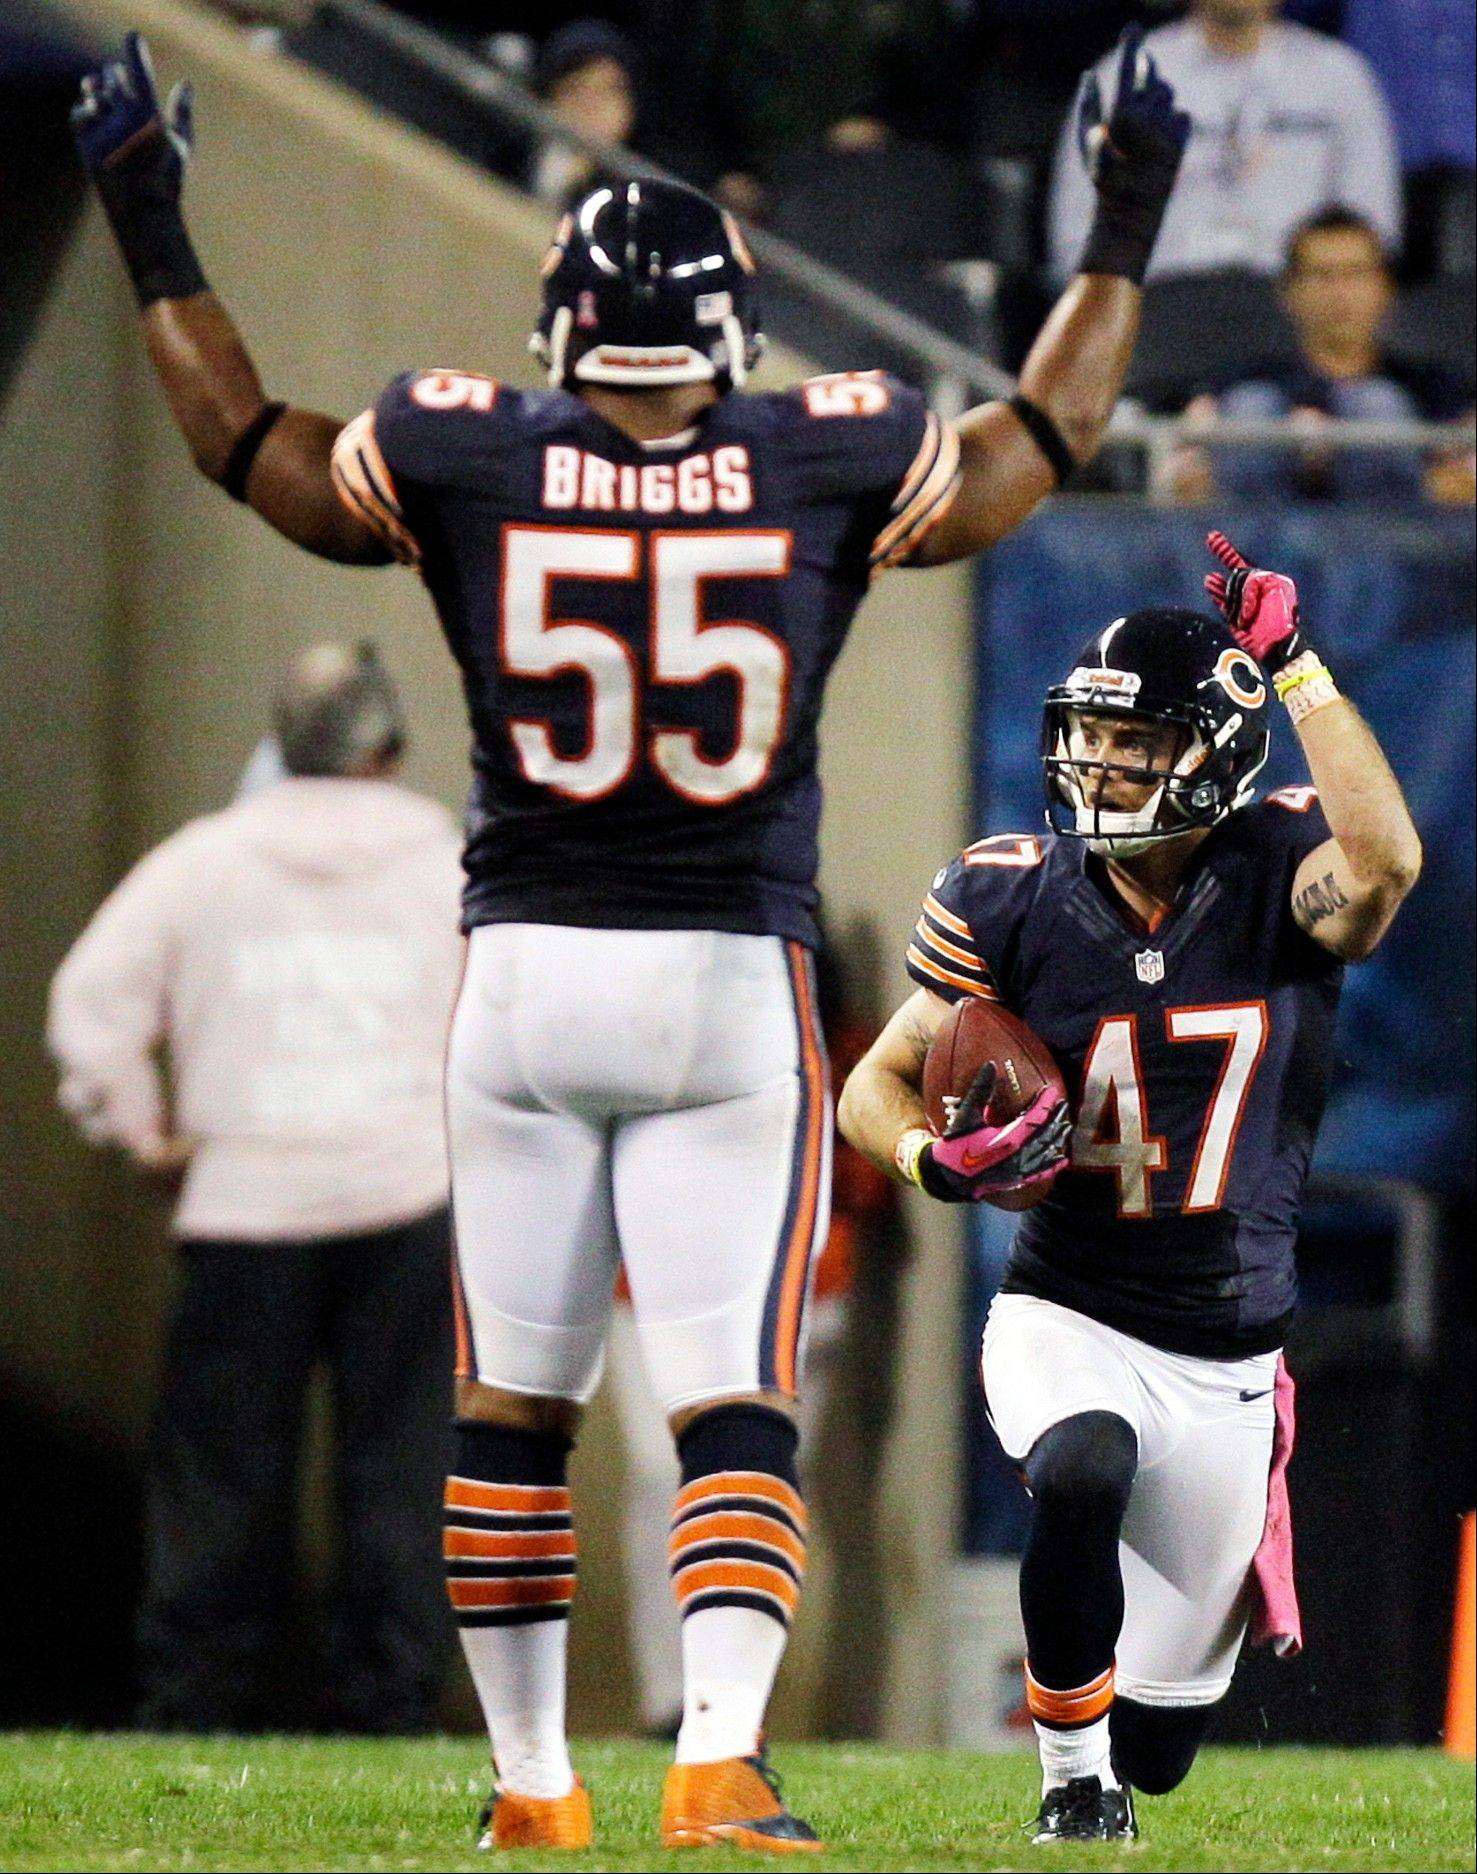 Bears safety Chris Conte celebrates with linebacker Lance Briggs (55) after intercepting a pass in the second half of Monday's victory over Detroit.